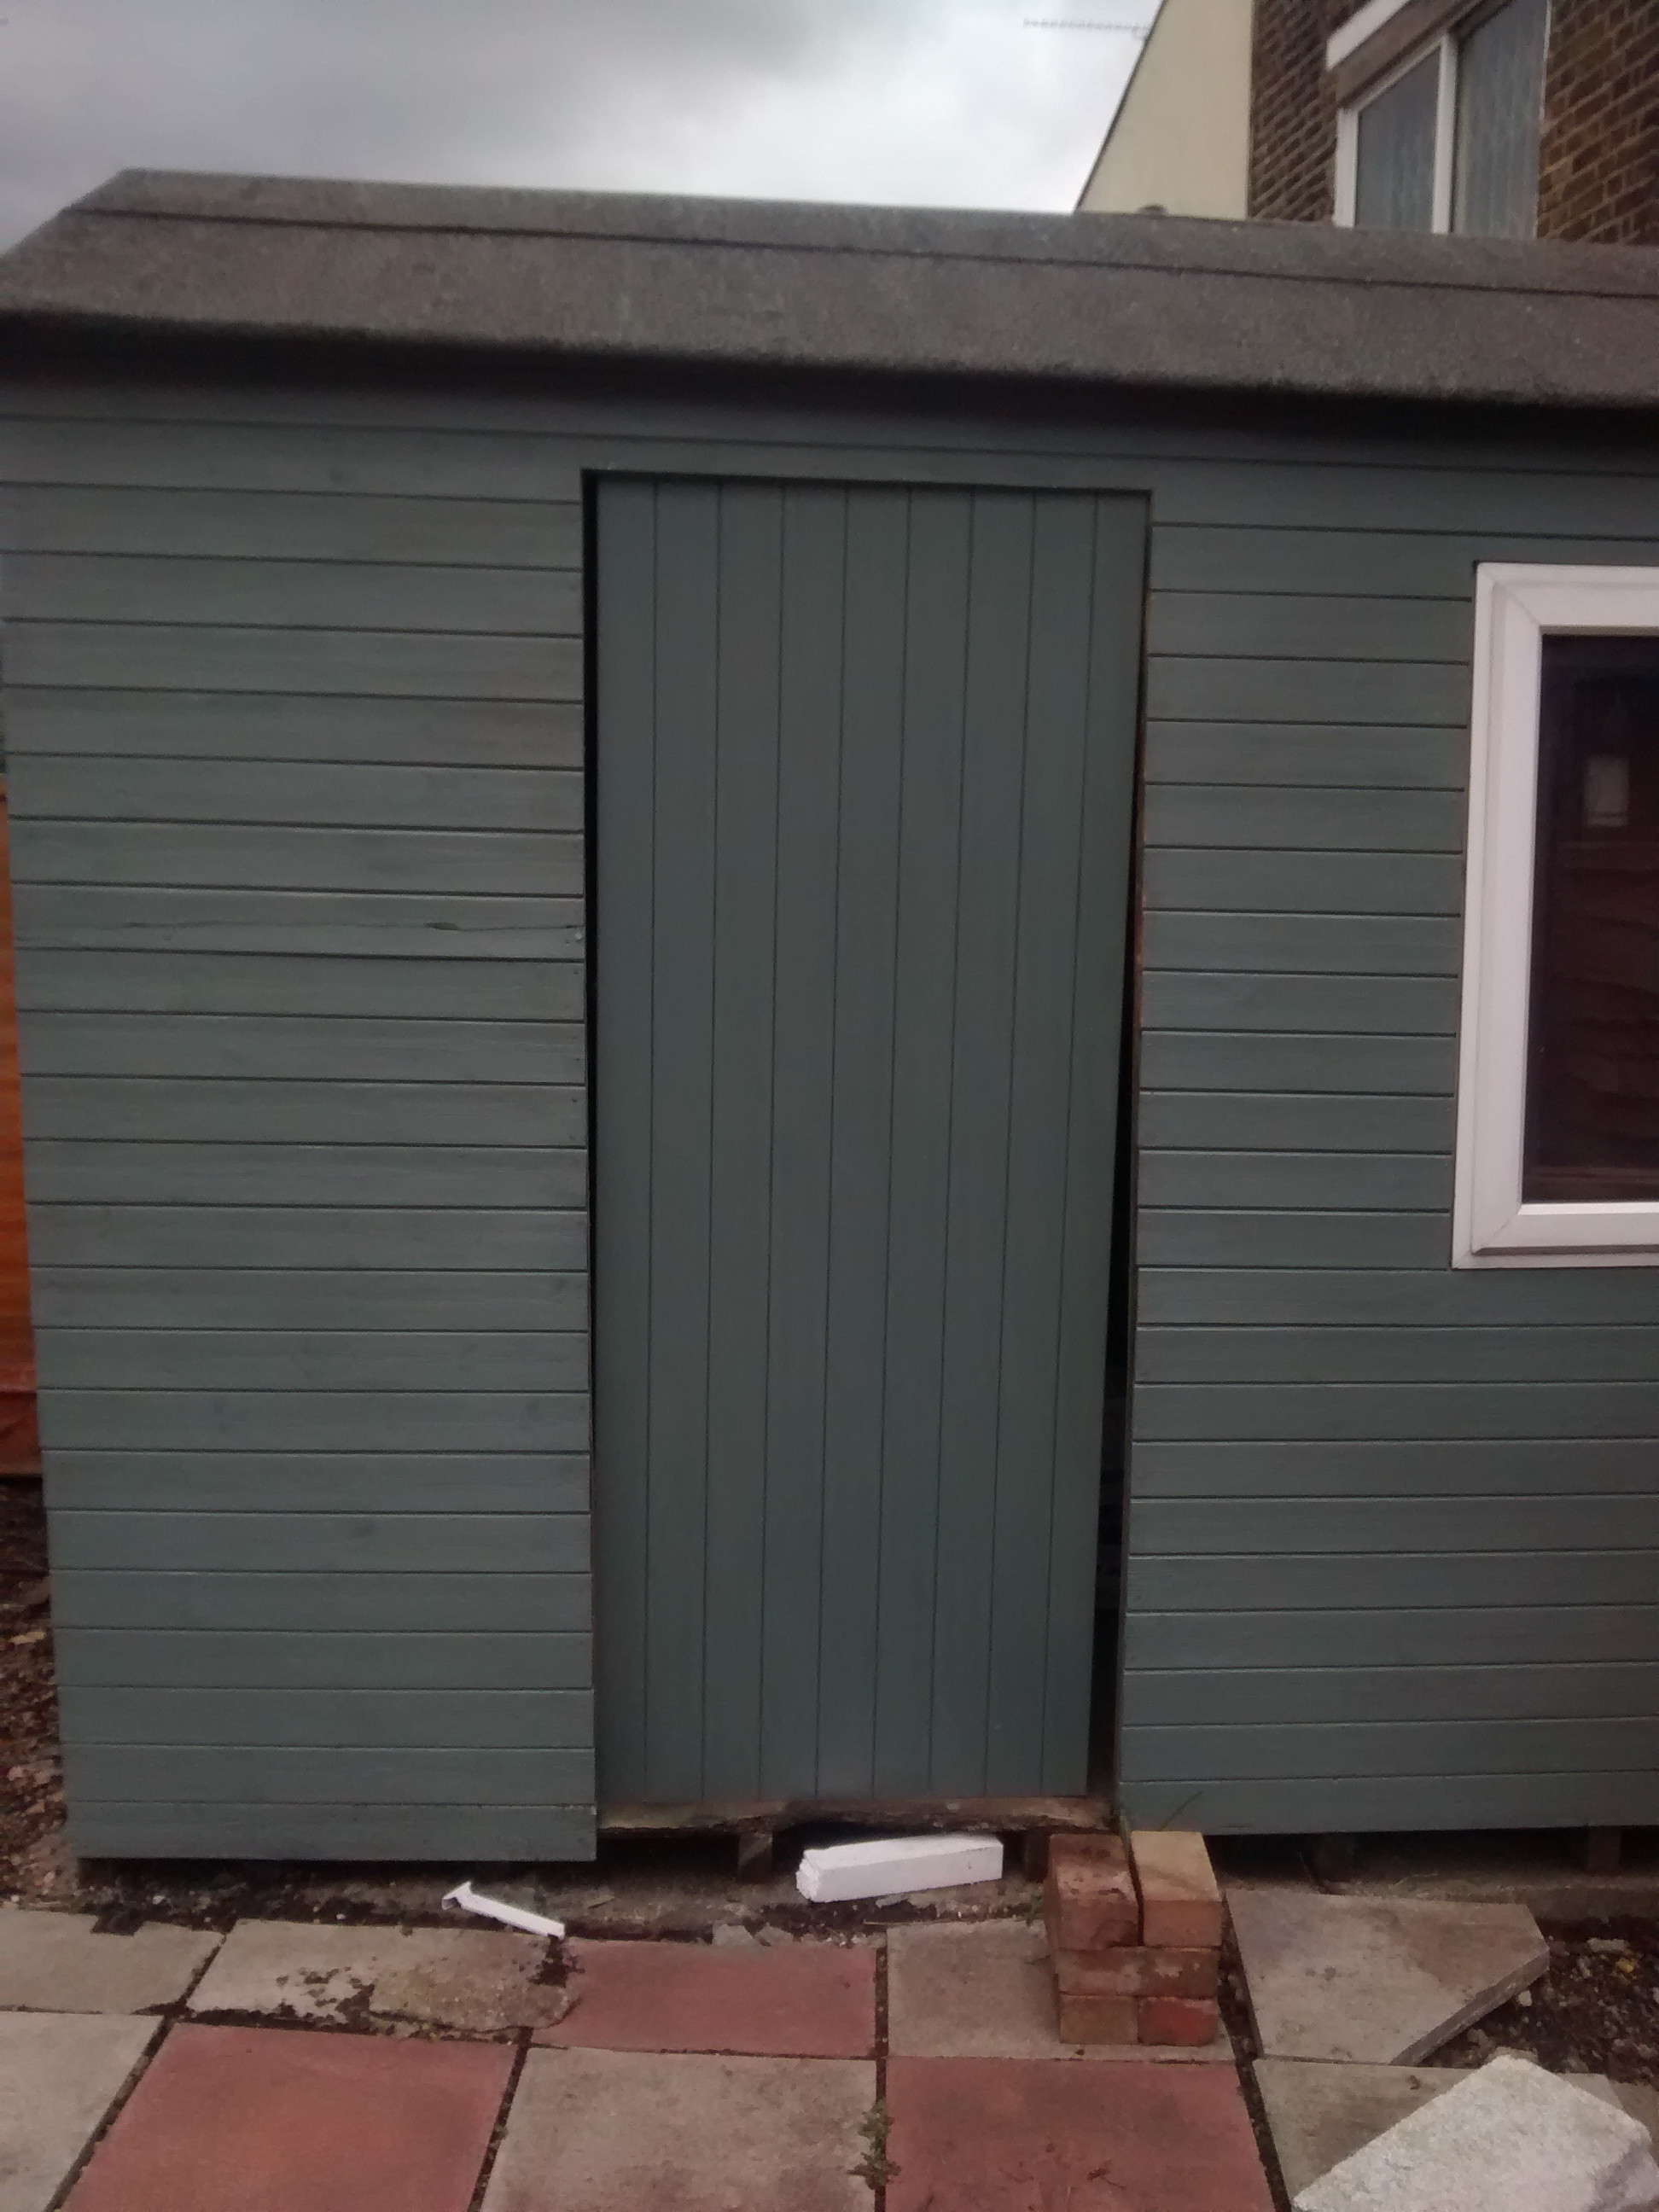 Hanging A New Shed Door On A Frame That Is Not Level